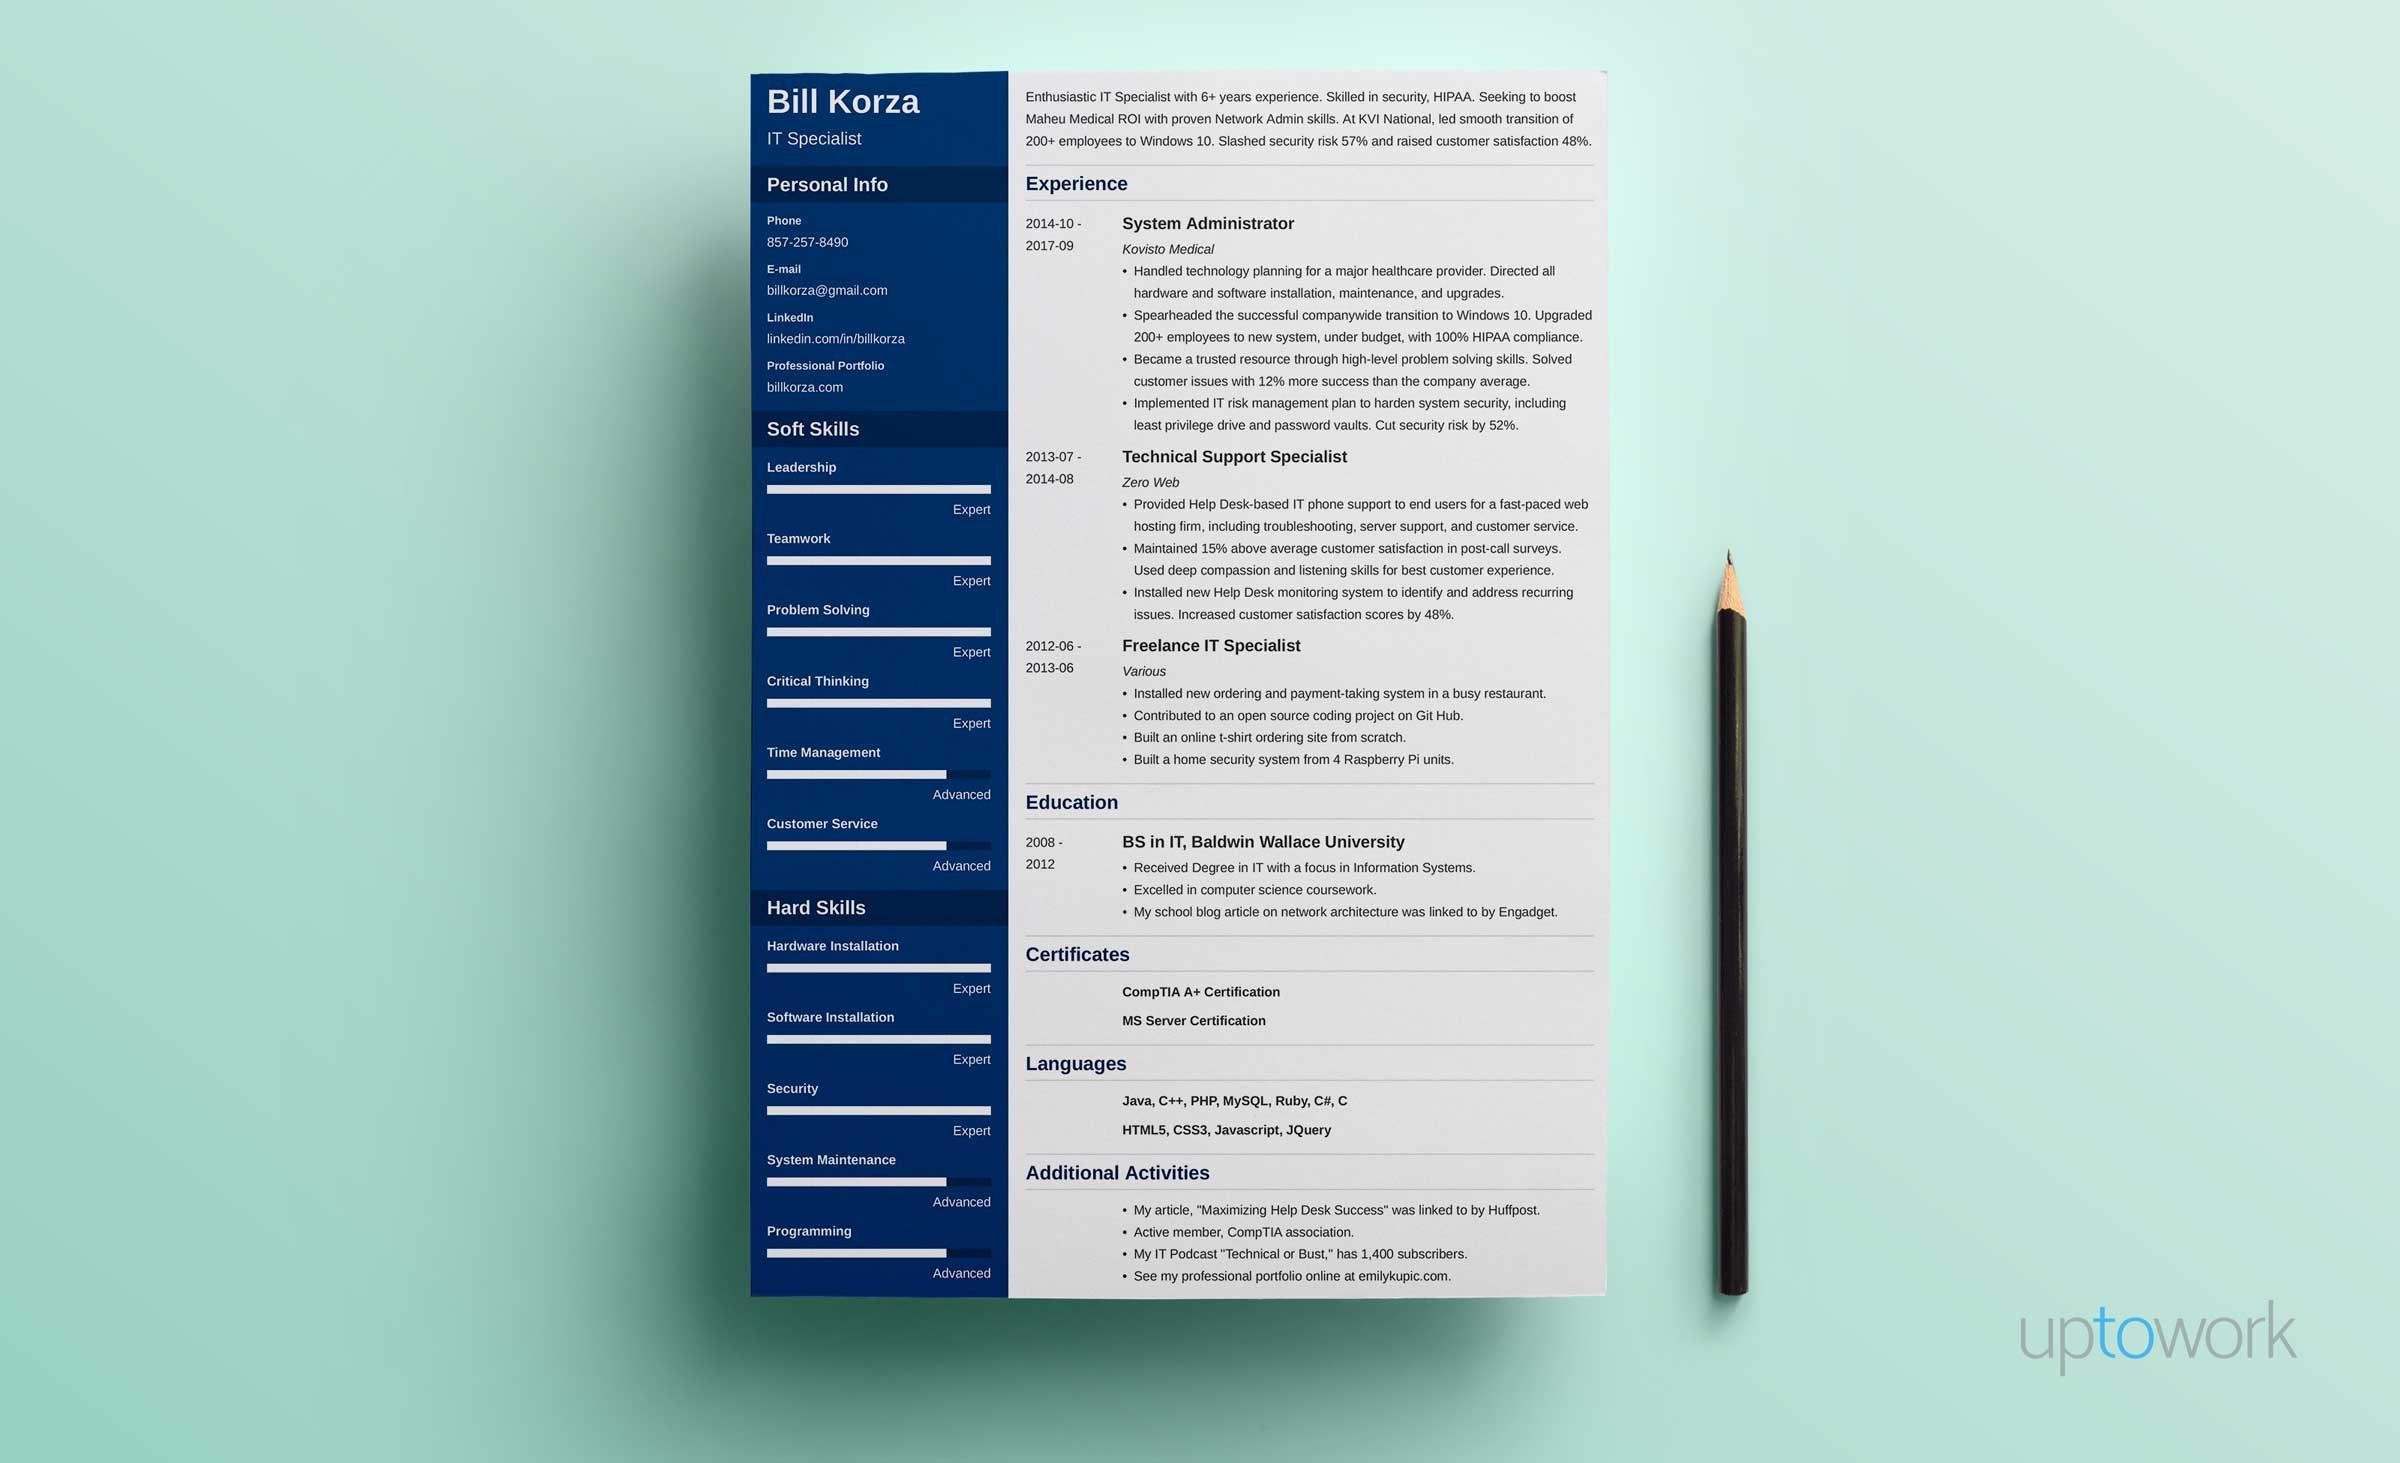 20 Resume Profile Examples: How to Write a Professional Profile [+ ...